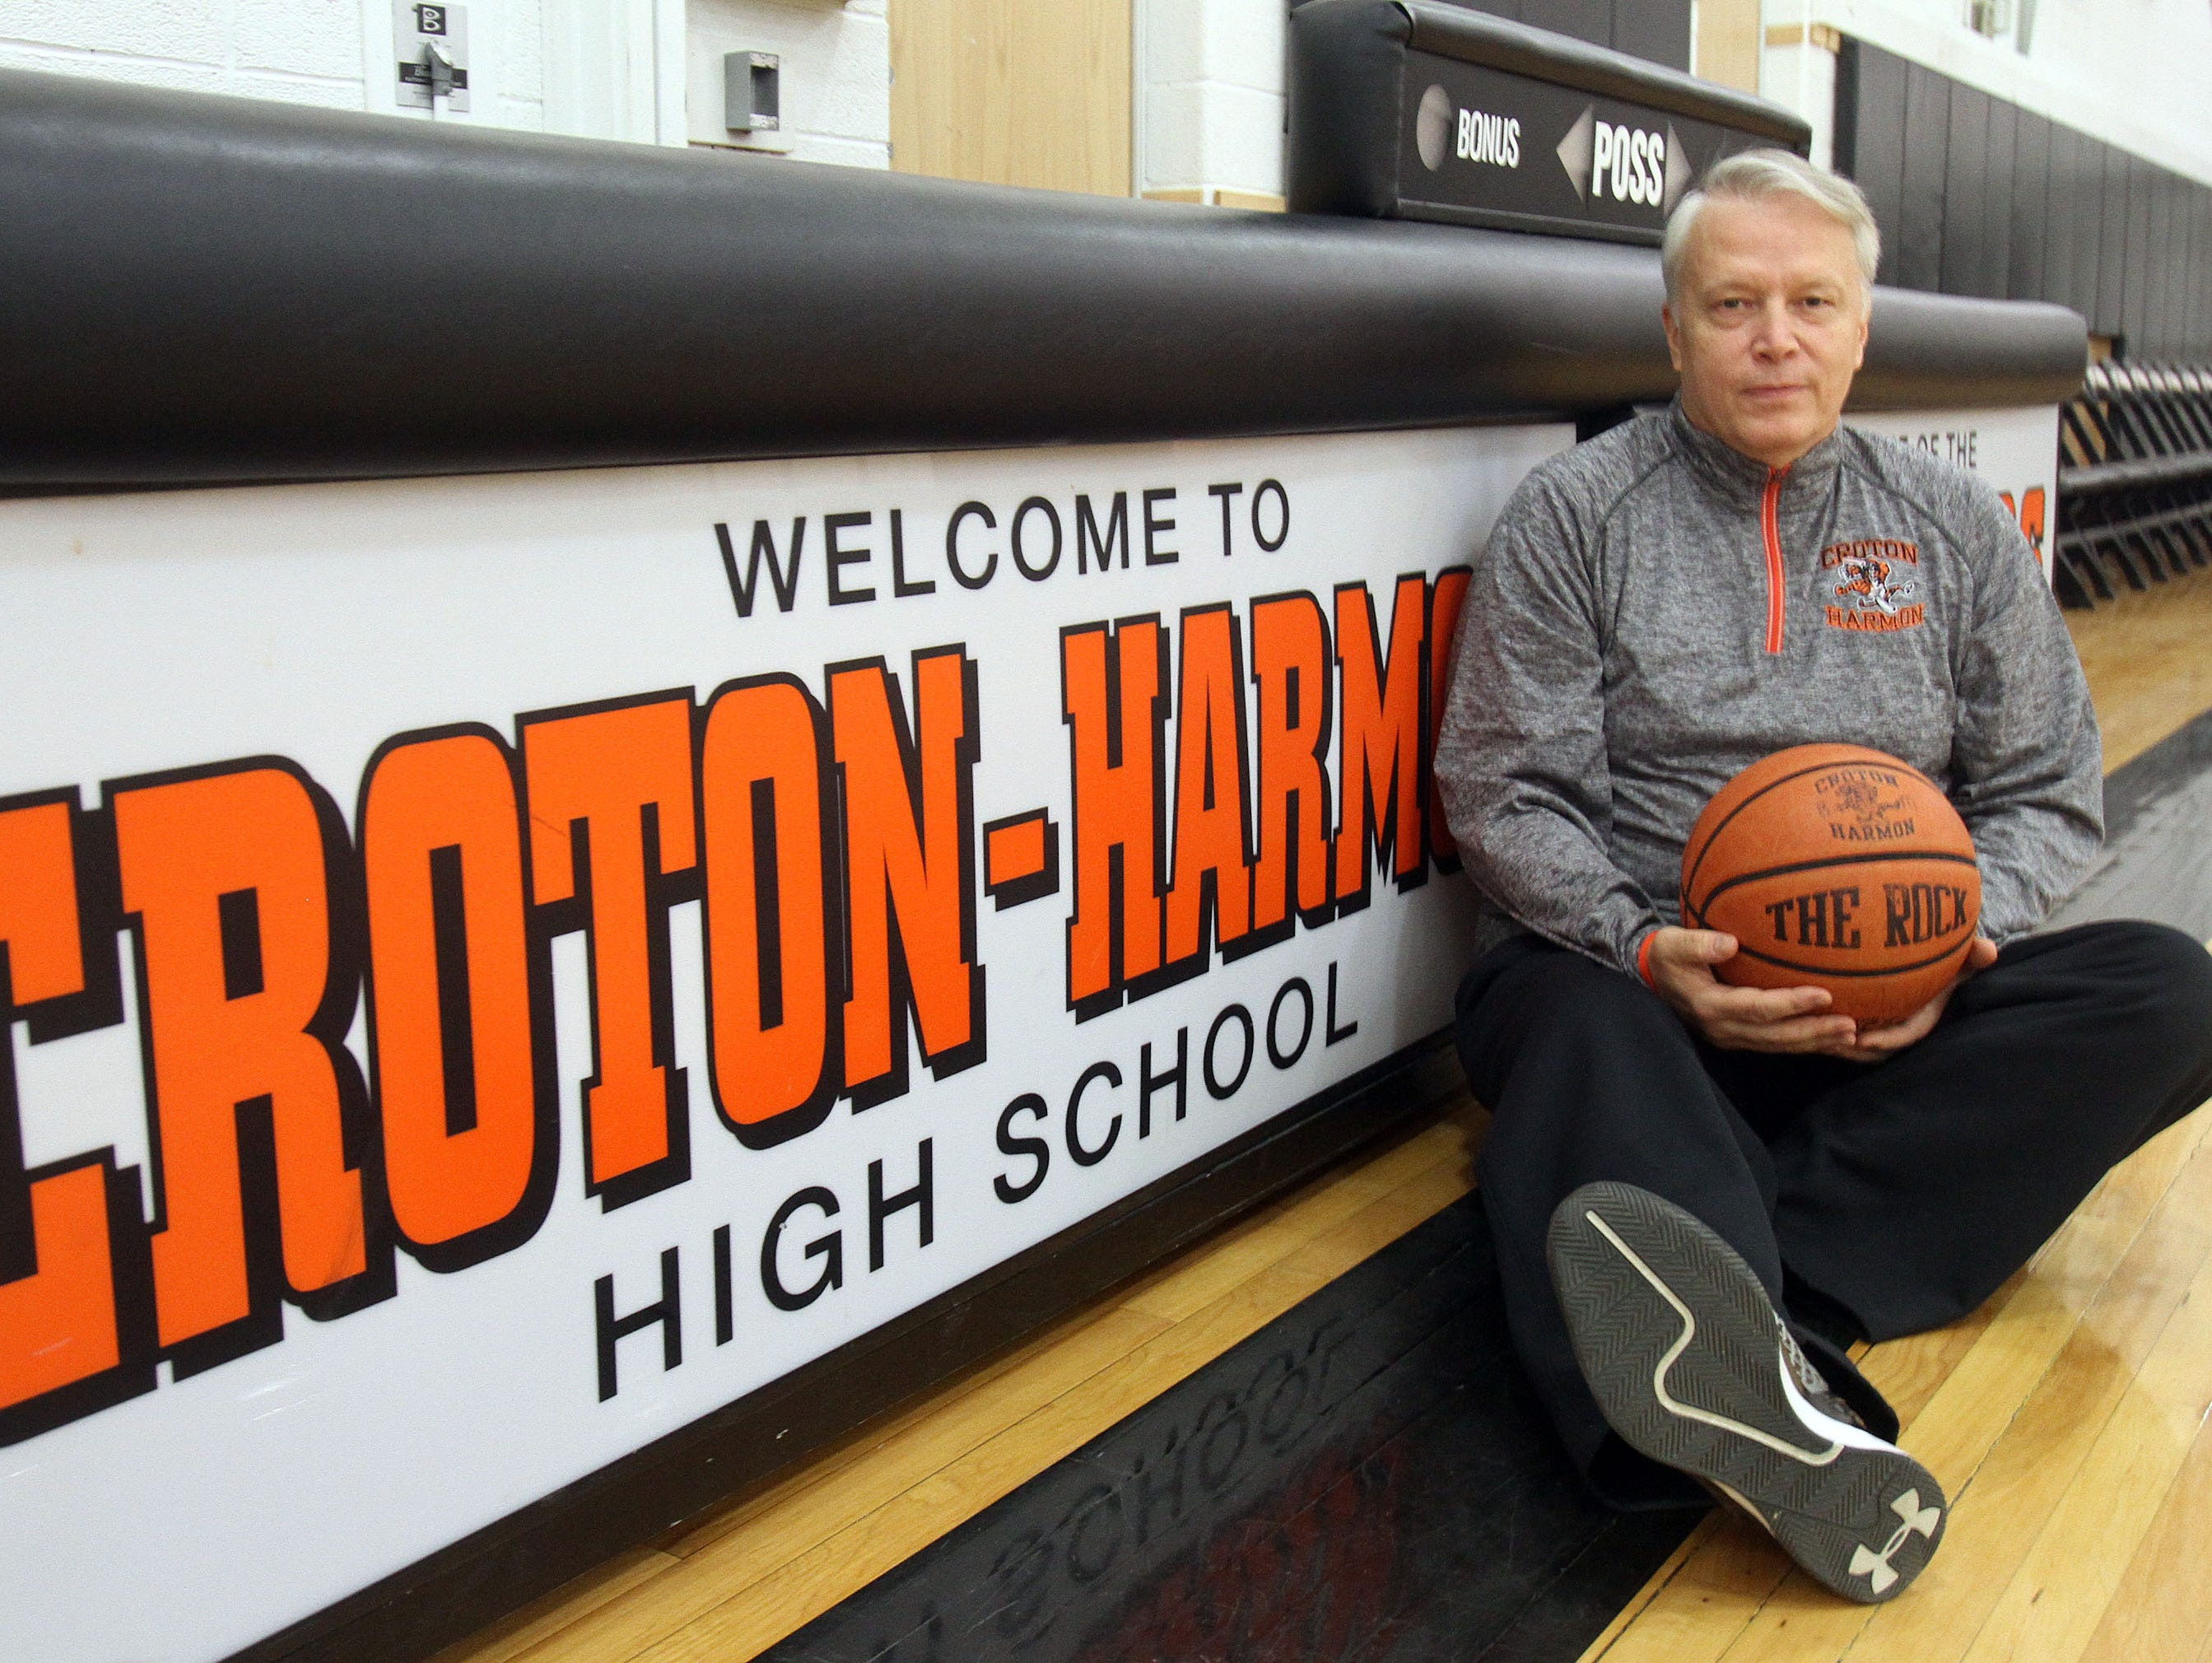 Croton basketball coach Bill Thom is photographed before a game in the Croton High School gym Jan. 21, 2016.